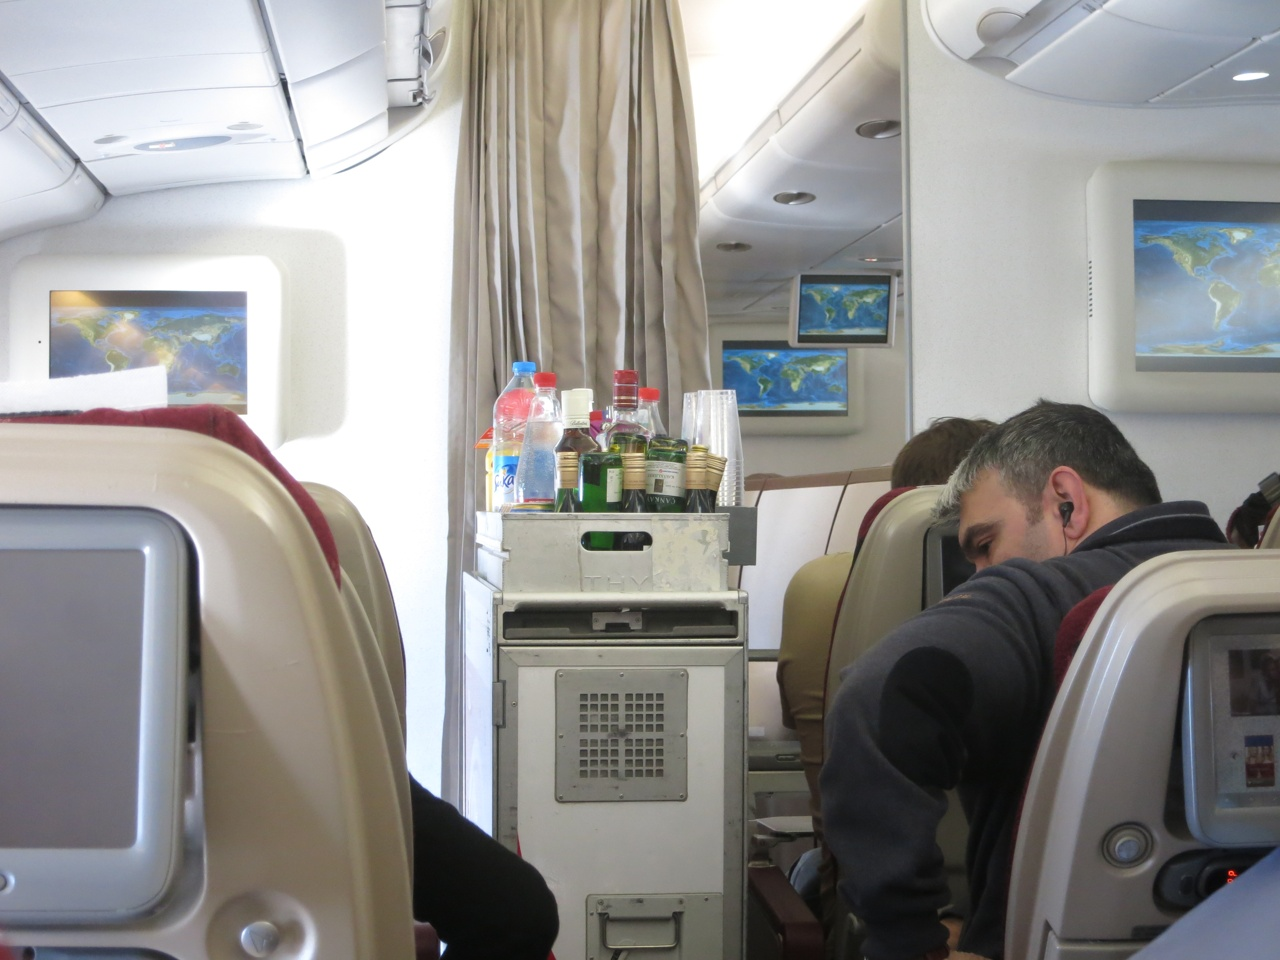 Turkish Airlines Economy class A330, - Jet Airways wet lease, 019.JPG